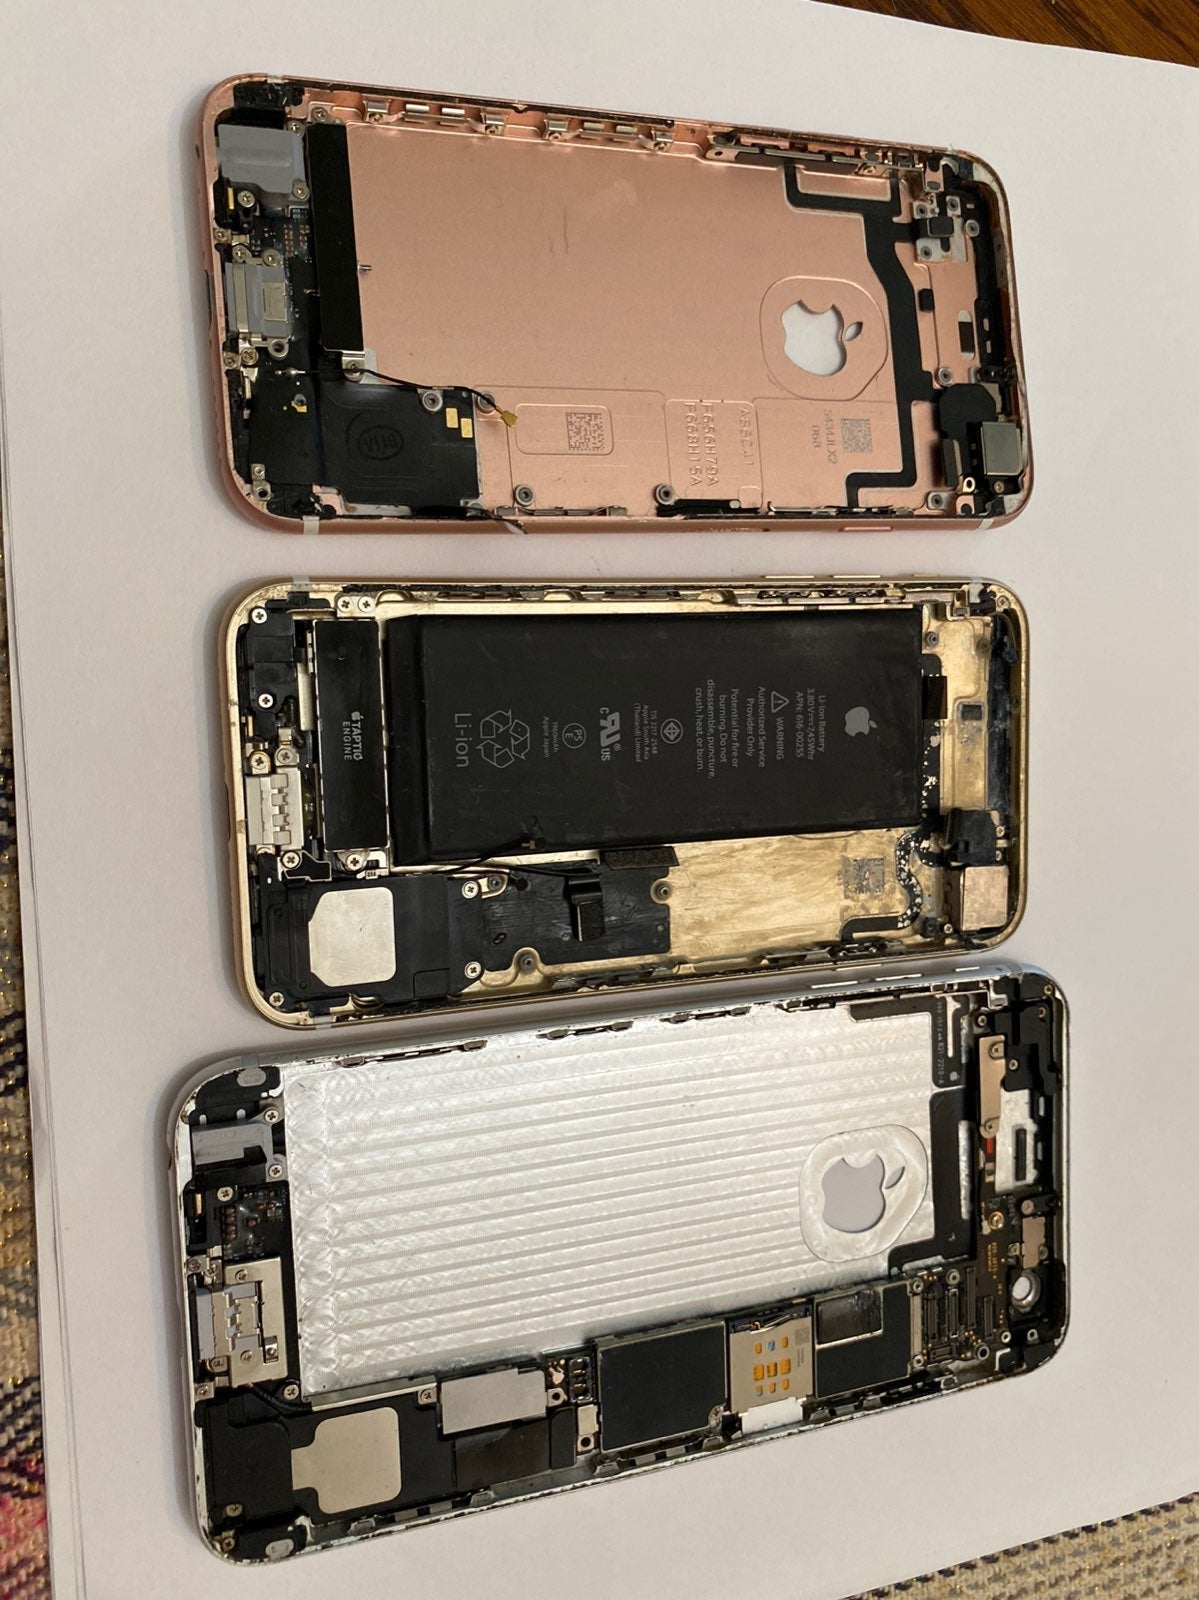 3 pcs Iphone Back Cover used for PARTS